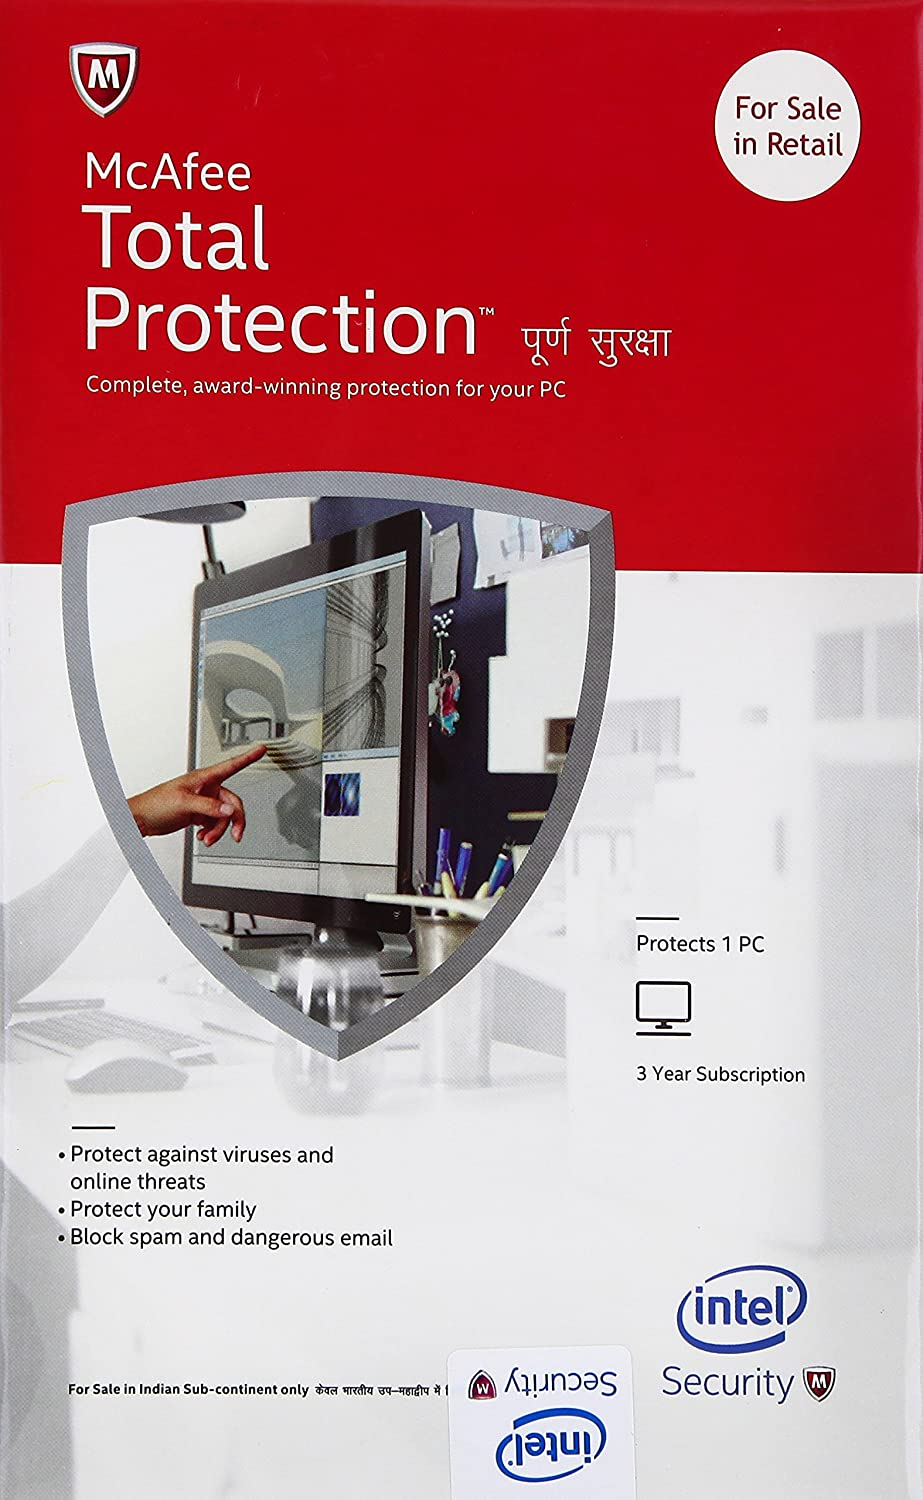 Upto 70% off On Best Selling Software By Amazon | MMcAfee Total Protection - 1 User, 3 Years (CD) @ Rs.1,148